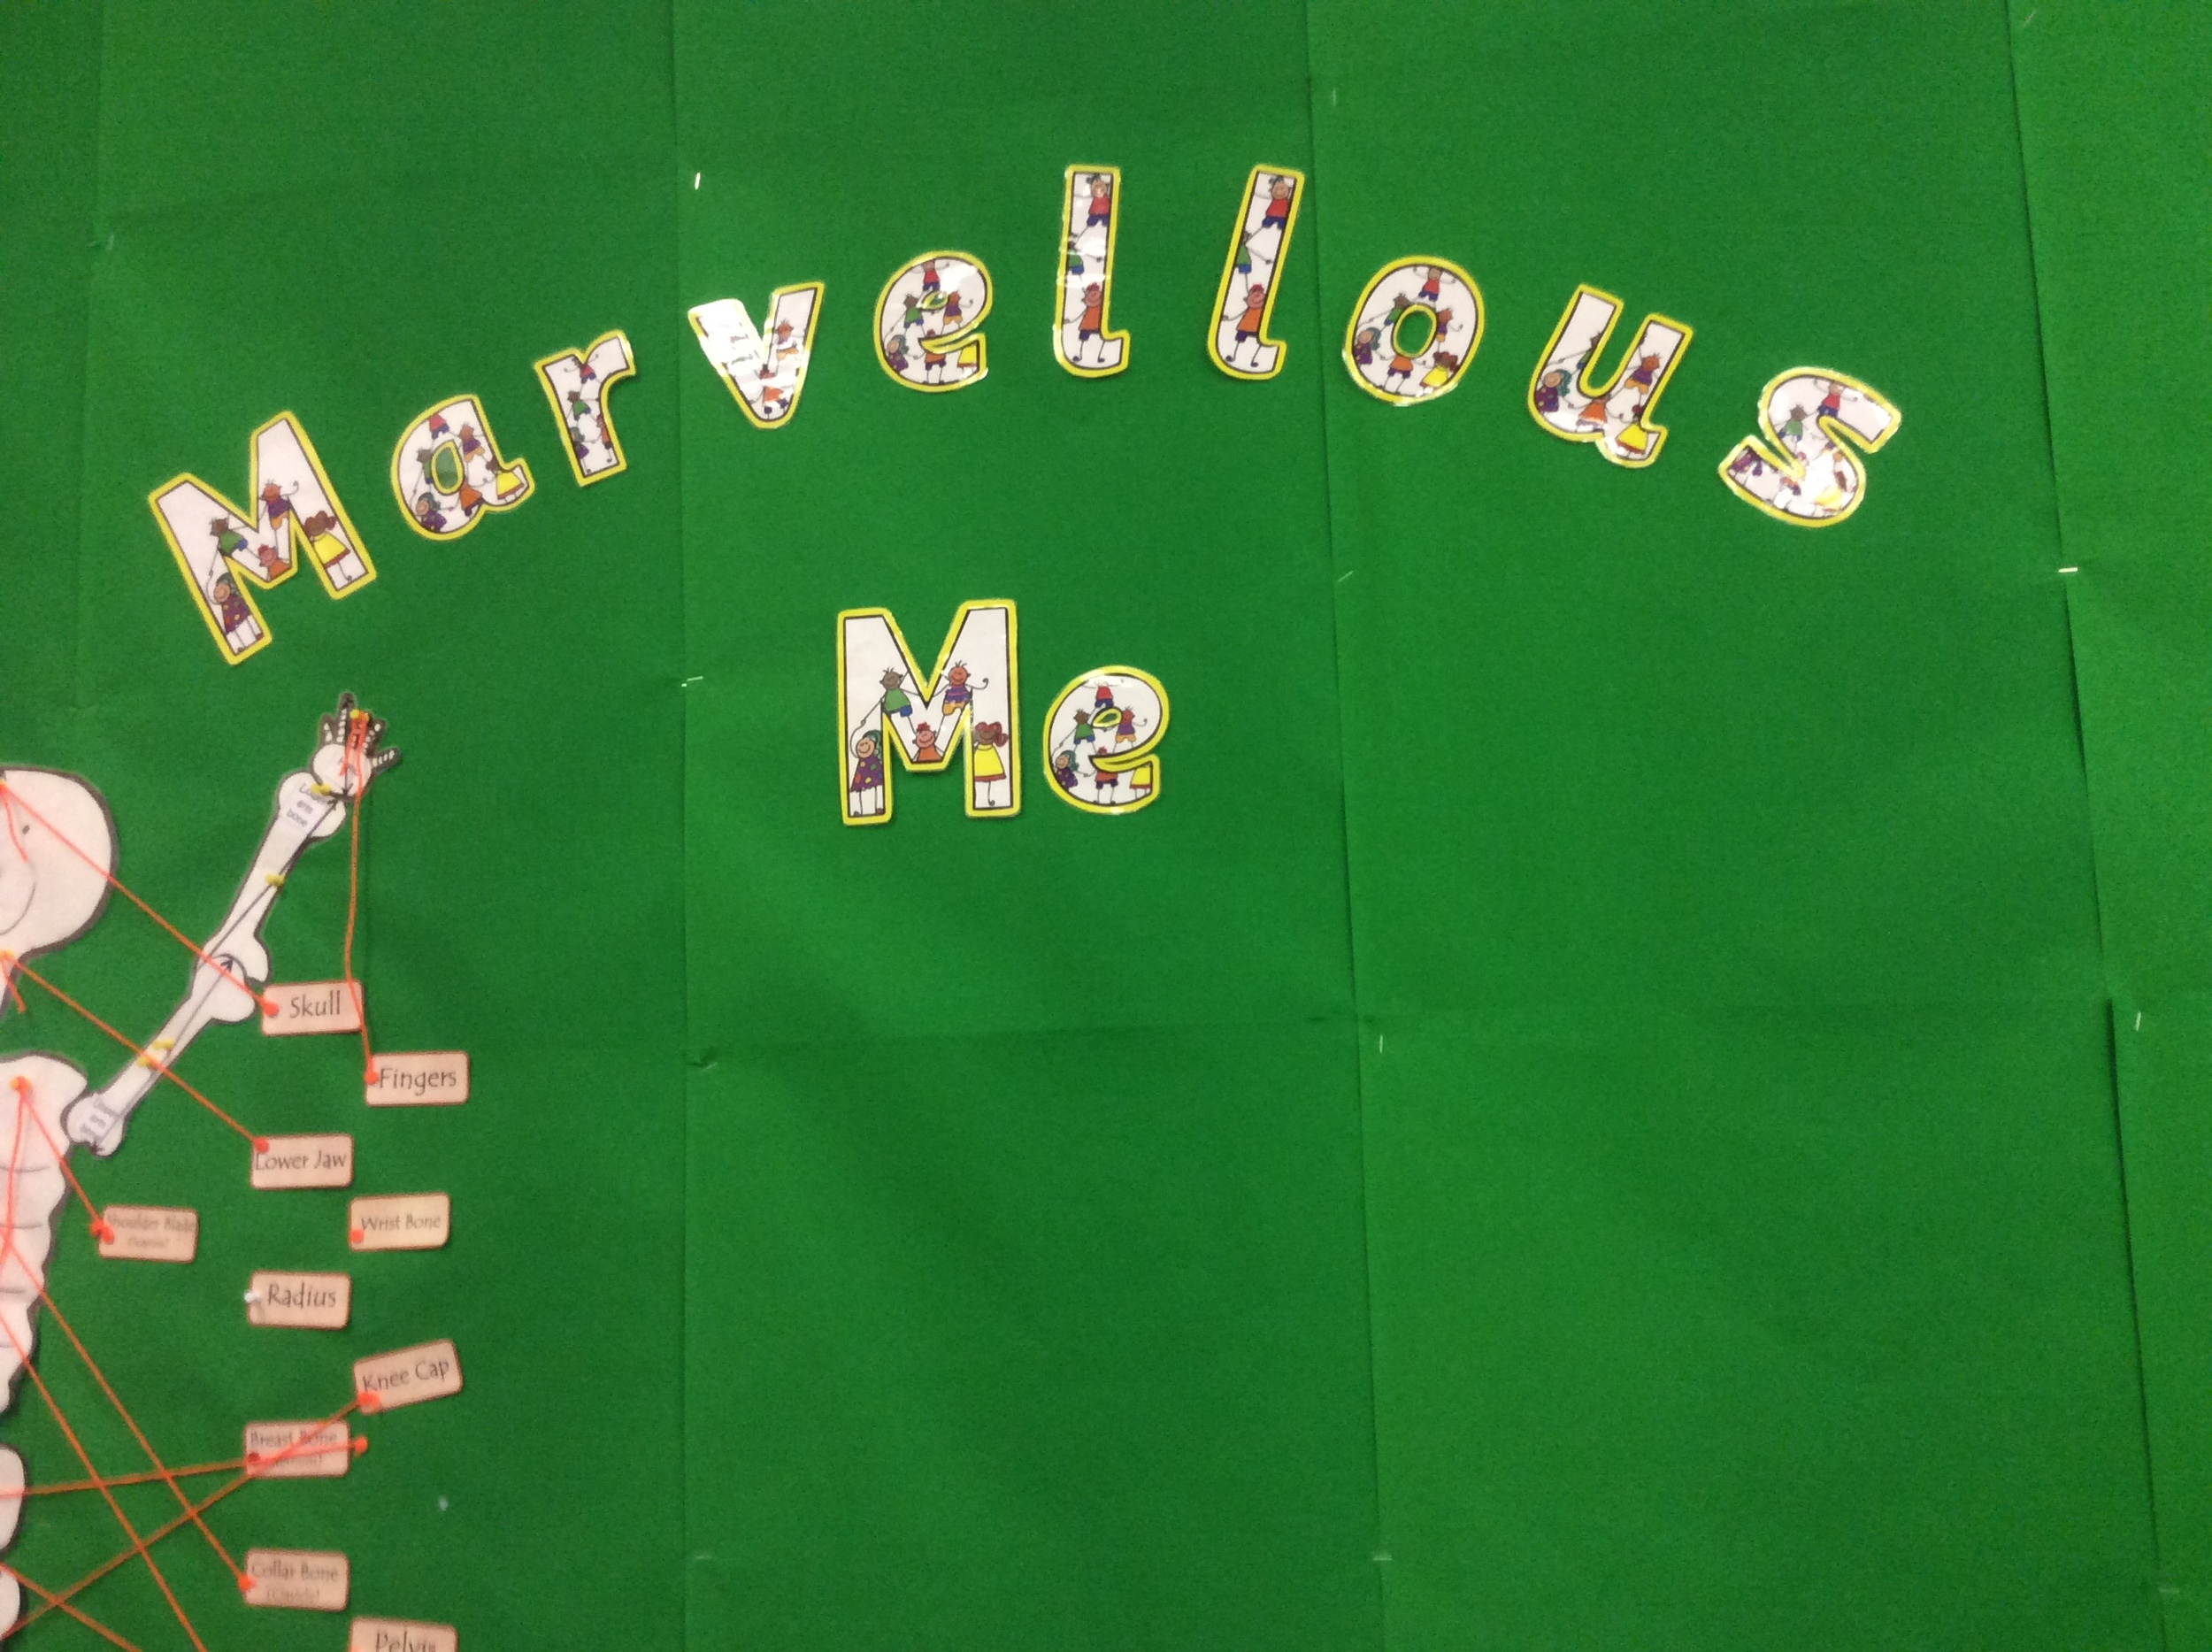 Our topic is 'Marvellous Me'. Our tables are named after bones of the body